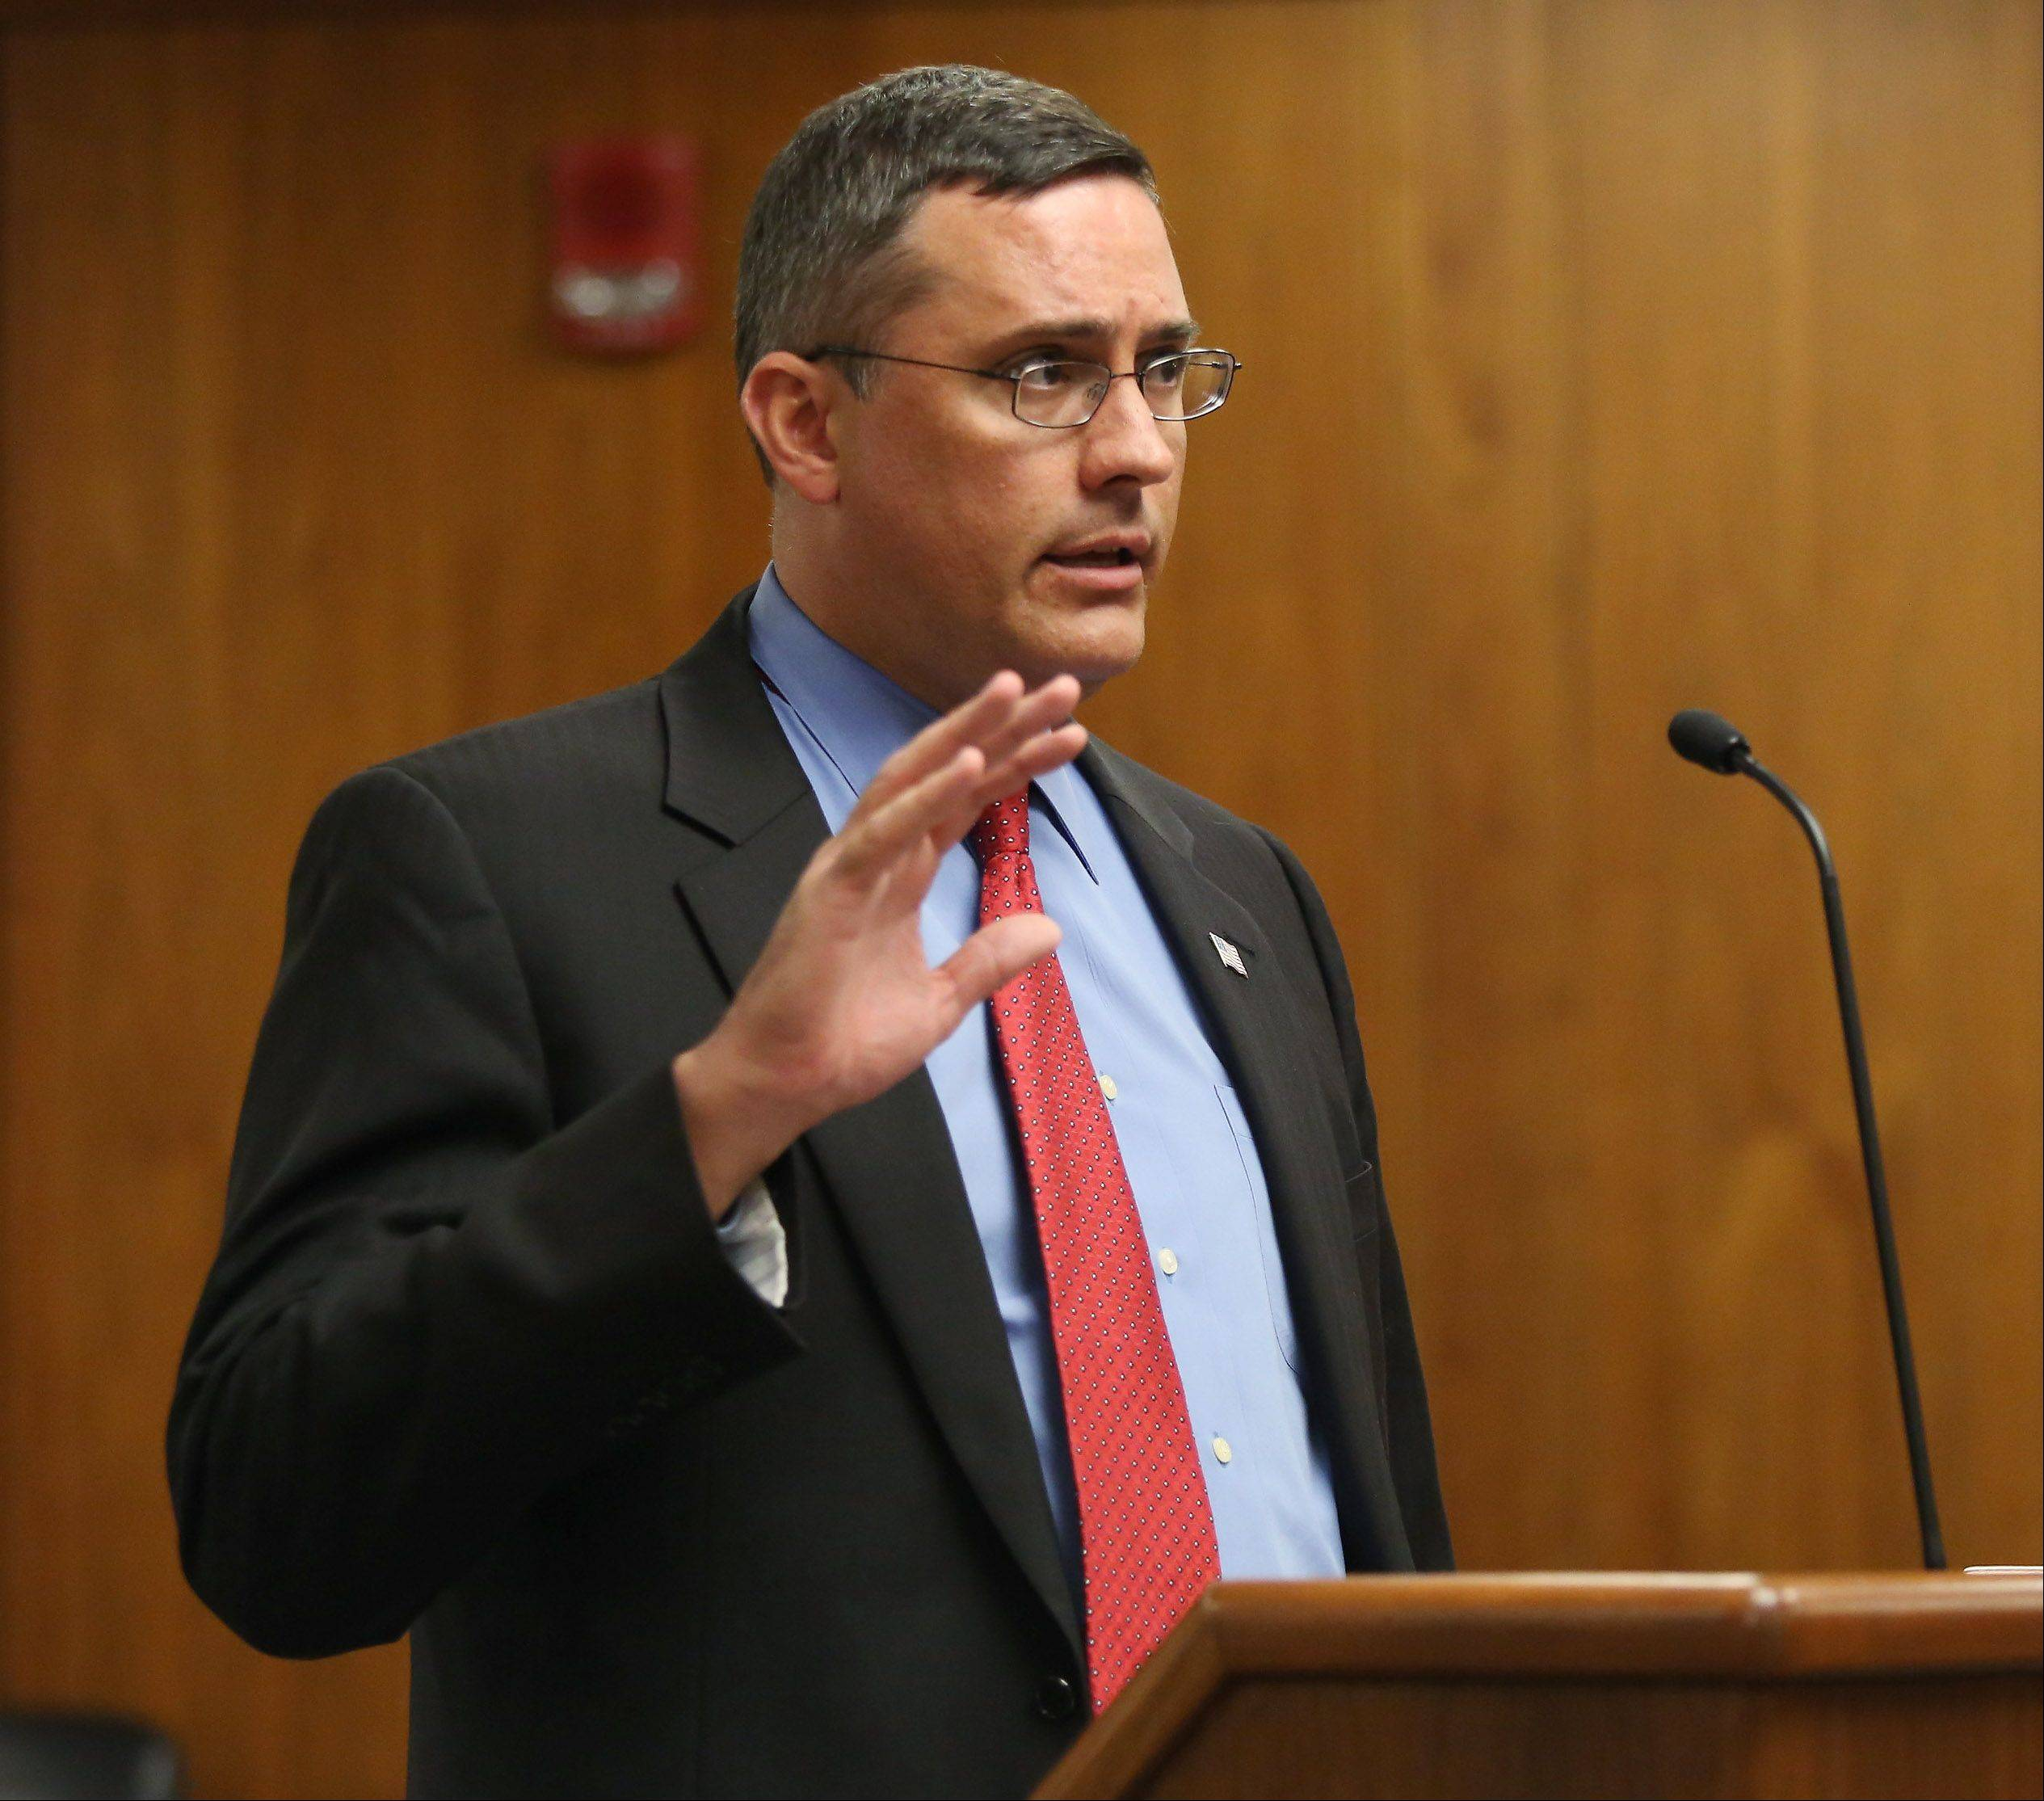 Lake County Assistant State's Attorney Scott Hoffert makes his closing statement during Ronald Stolberg's sentencing hearing Thursday in Waukegan. Stolberg received eight years in prison for involuntary manslaughter in the death of his wife, Rachel.